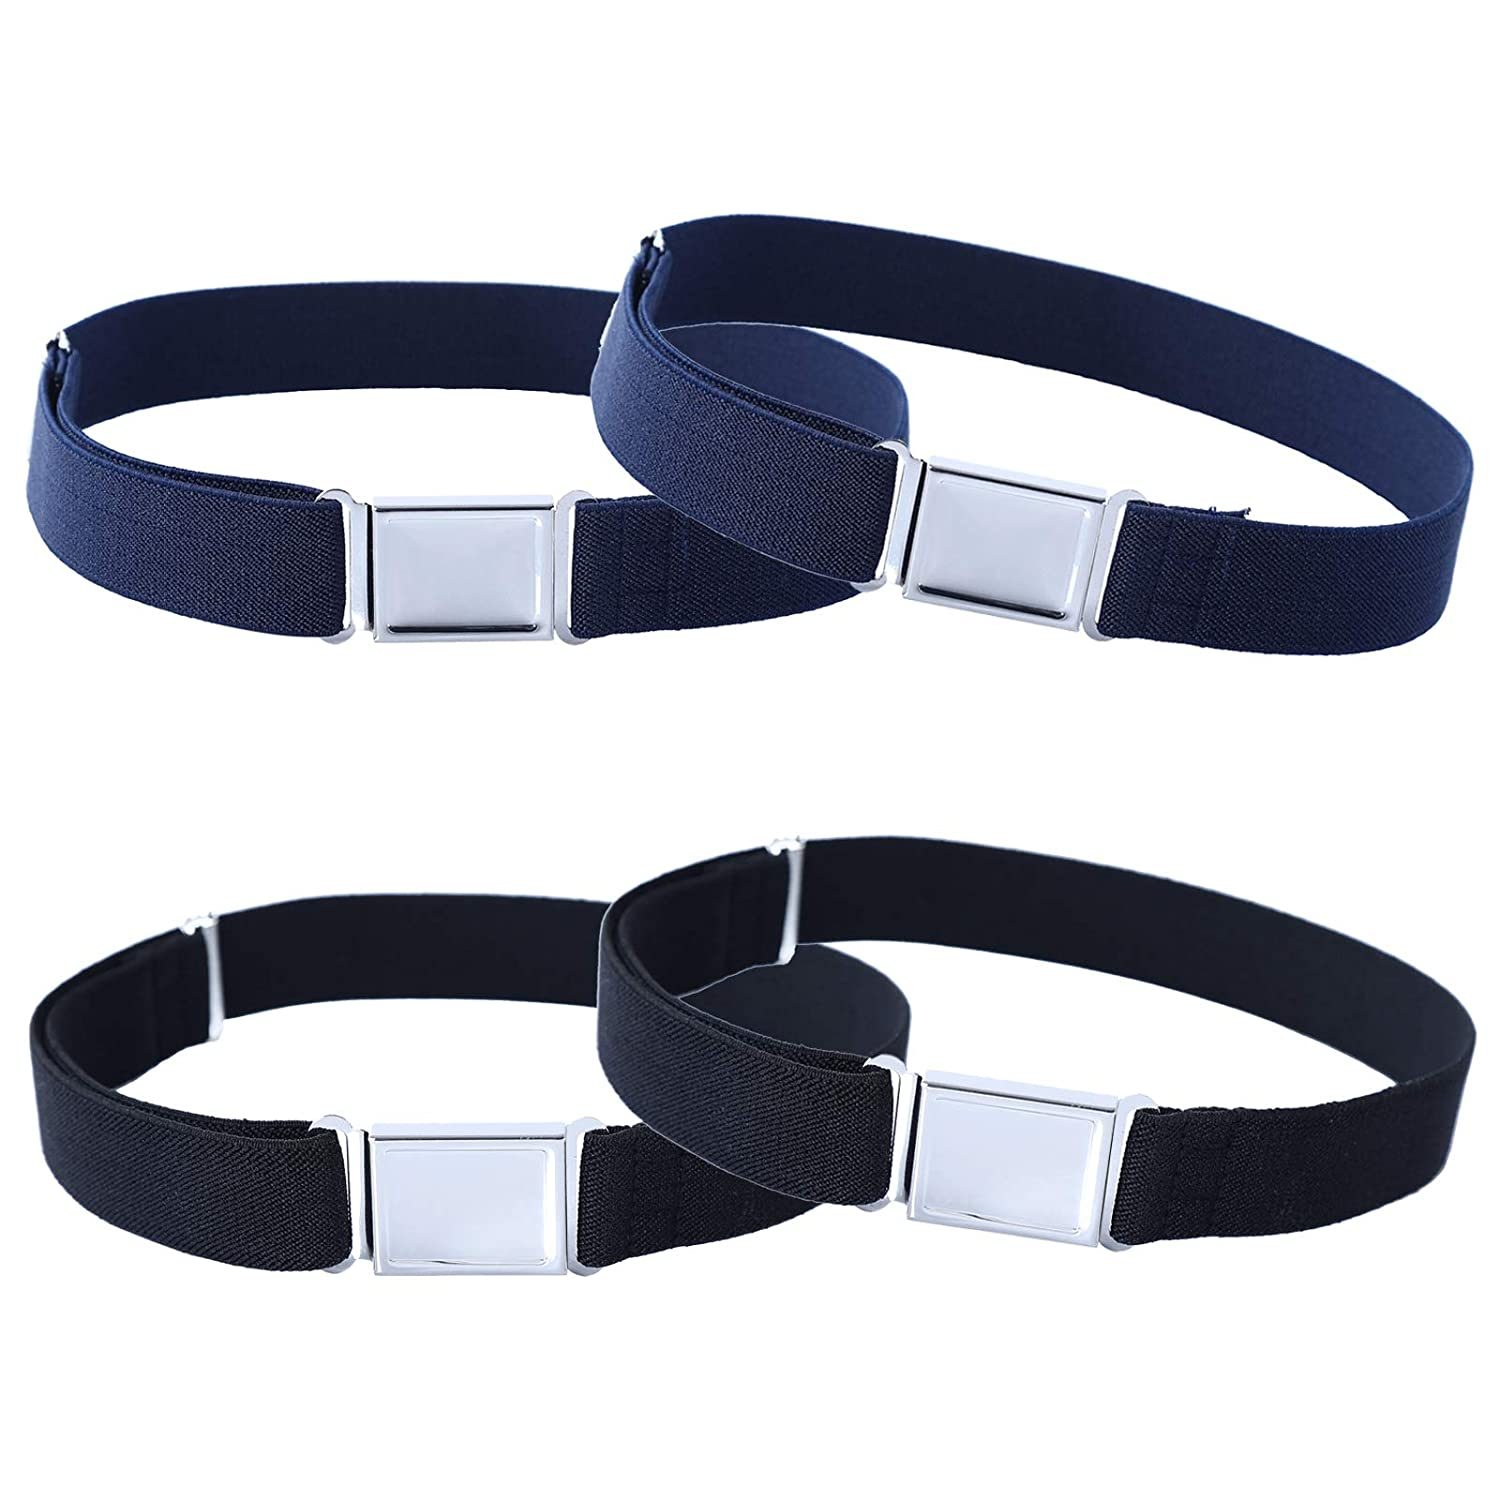 4PCS Kids Boys Adjustable Magnetic Belt - Elastic Belt with Easy Magnetic Buckle (4pcs Navy Blue)